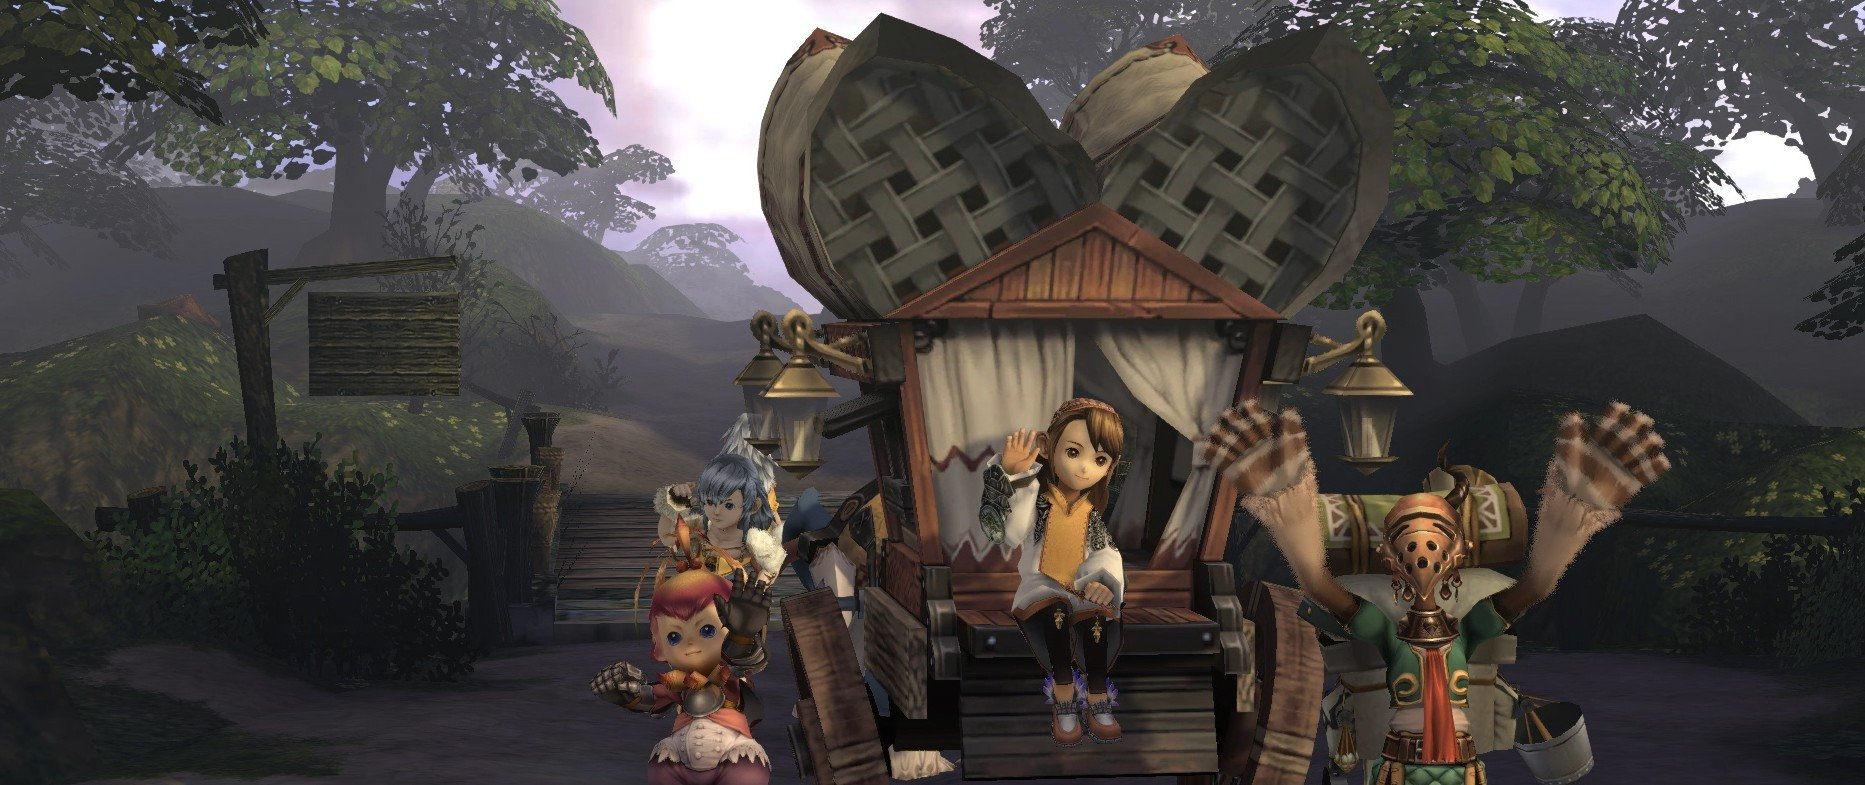 Square Enix tells us why the Final Fantasy Crystal Chronicles remaster doesn't have local co-op, and a lot more screenshot